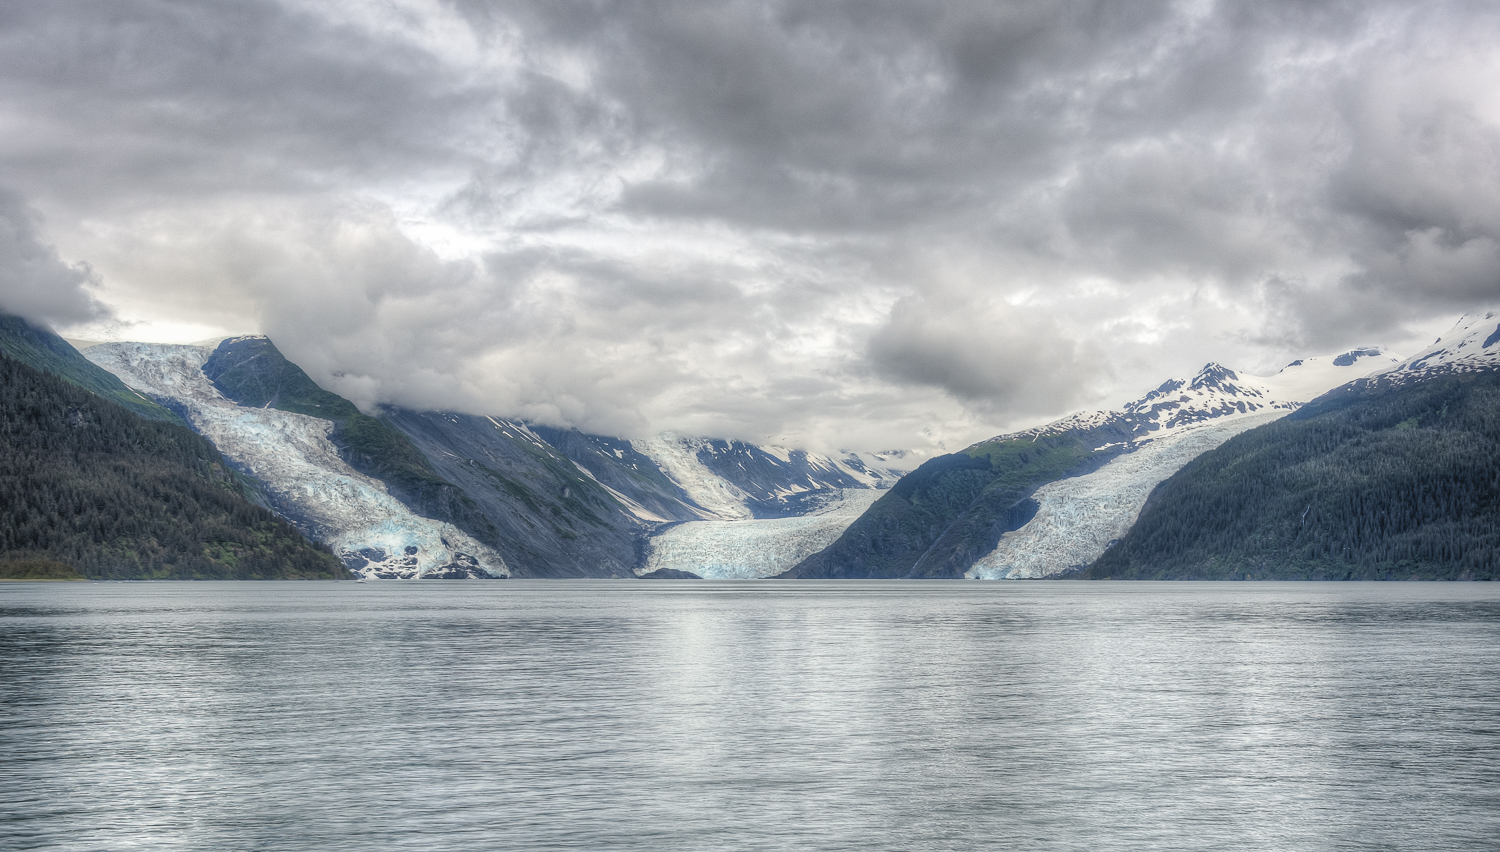 The Cascade, Barry and Coxe Glaciers